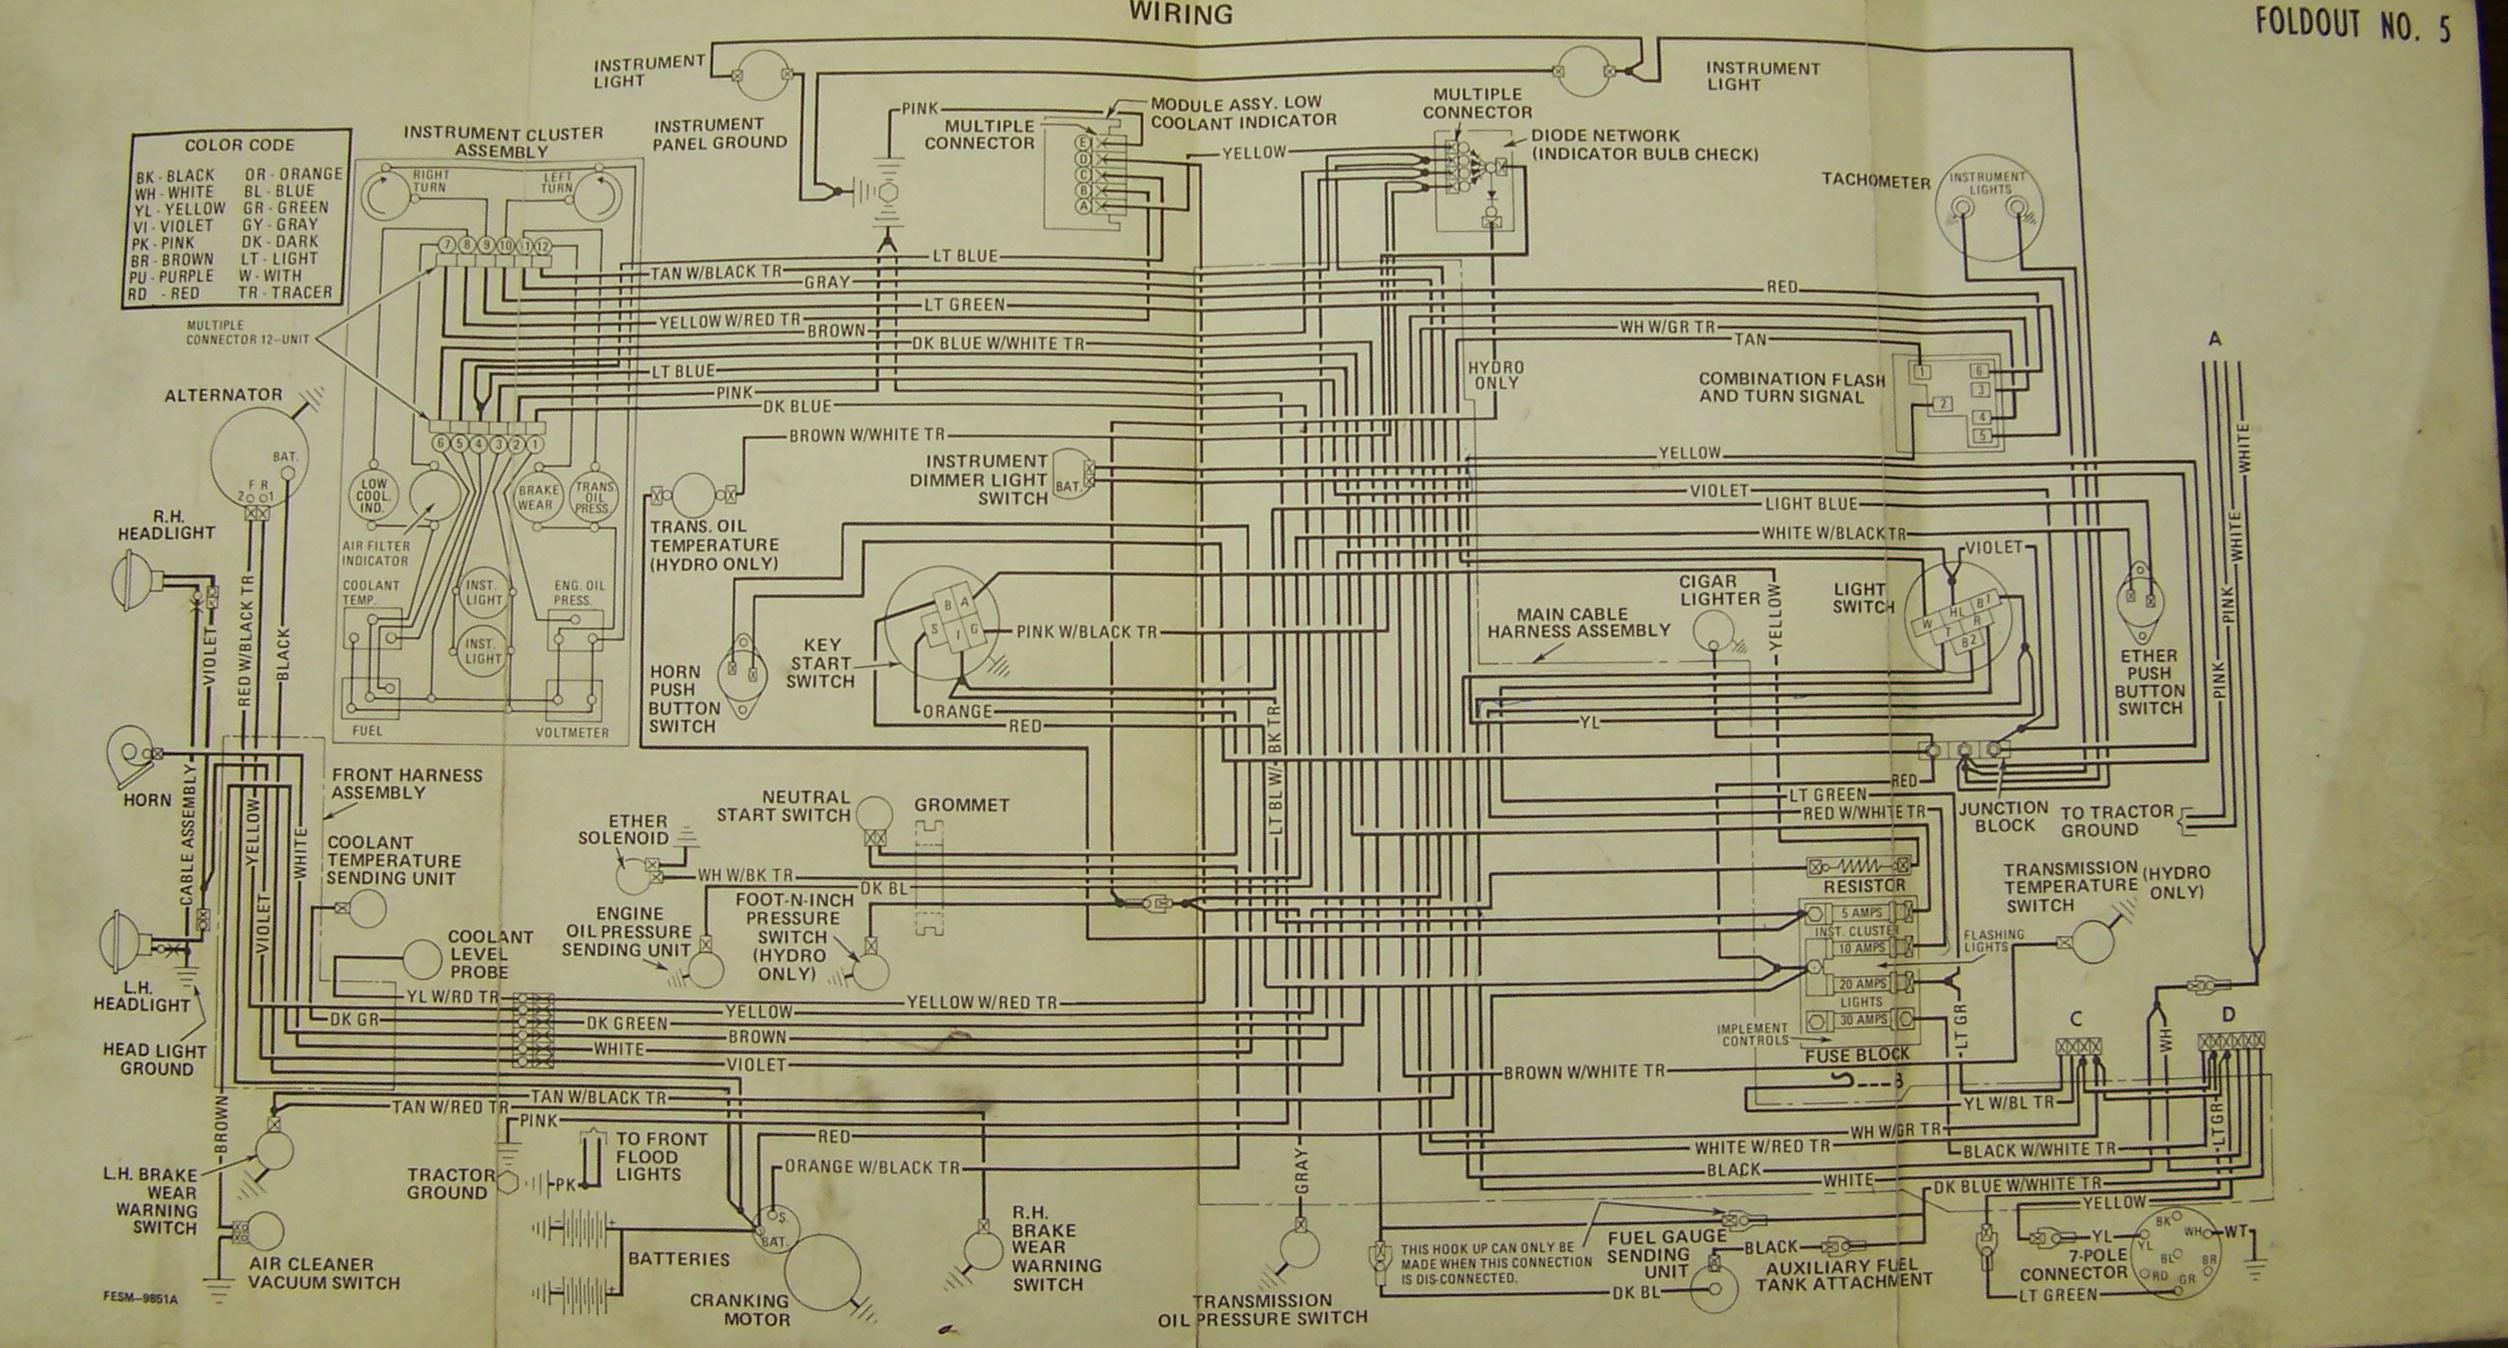 WRG-6786] Navistar 4300 Radio Wiring Diagram on